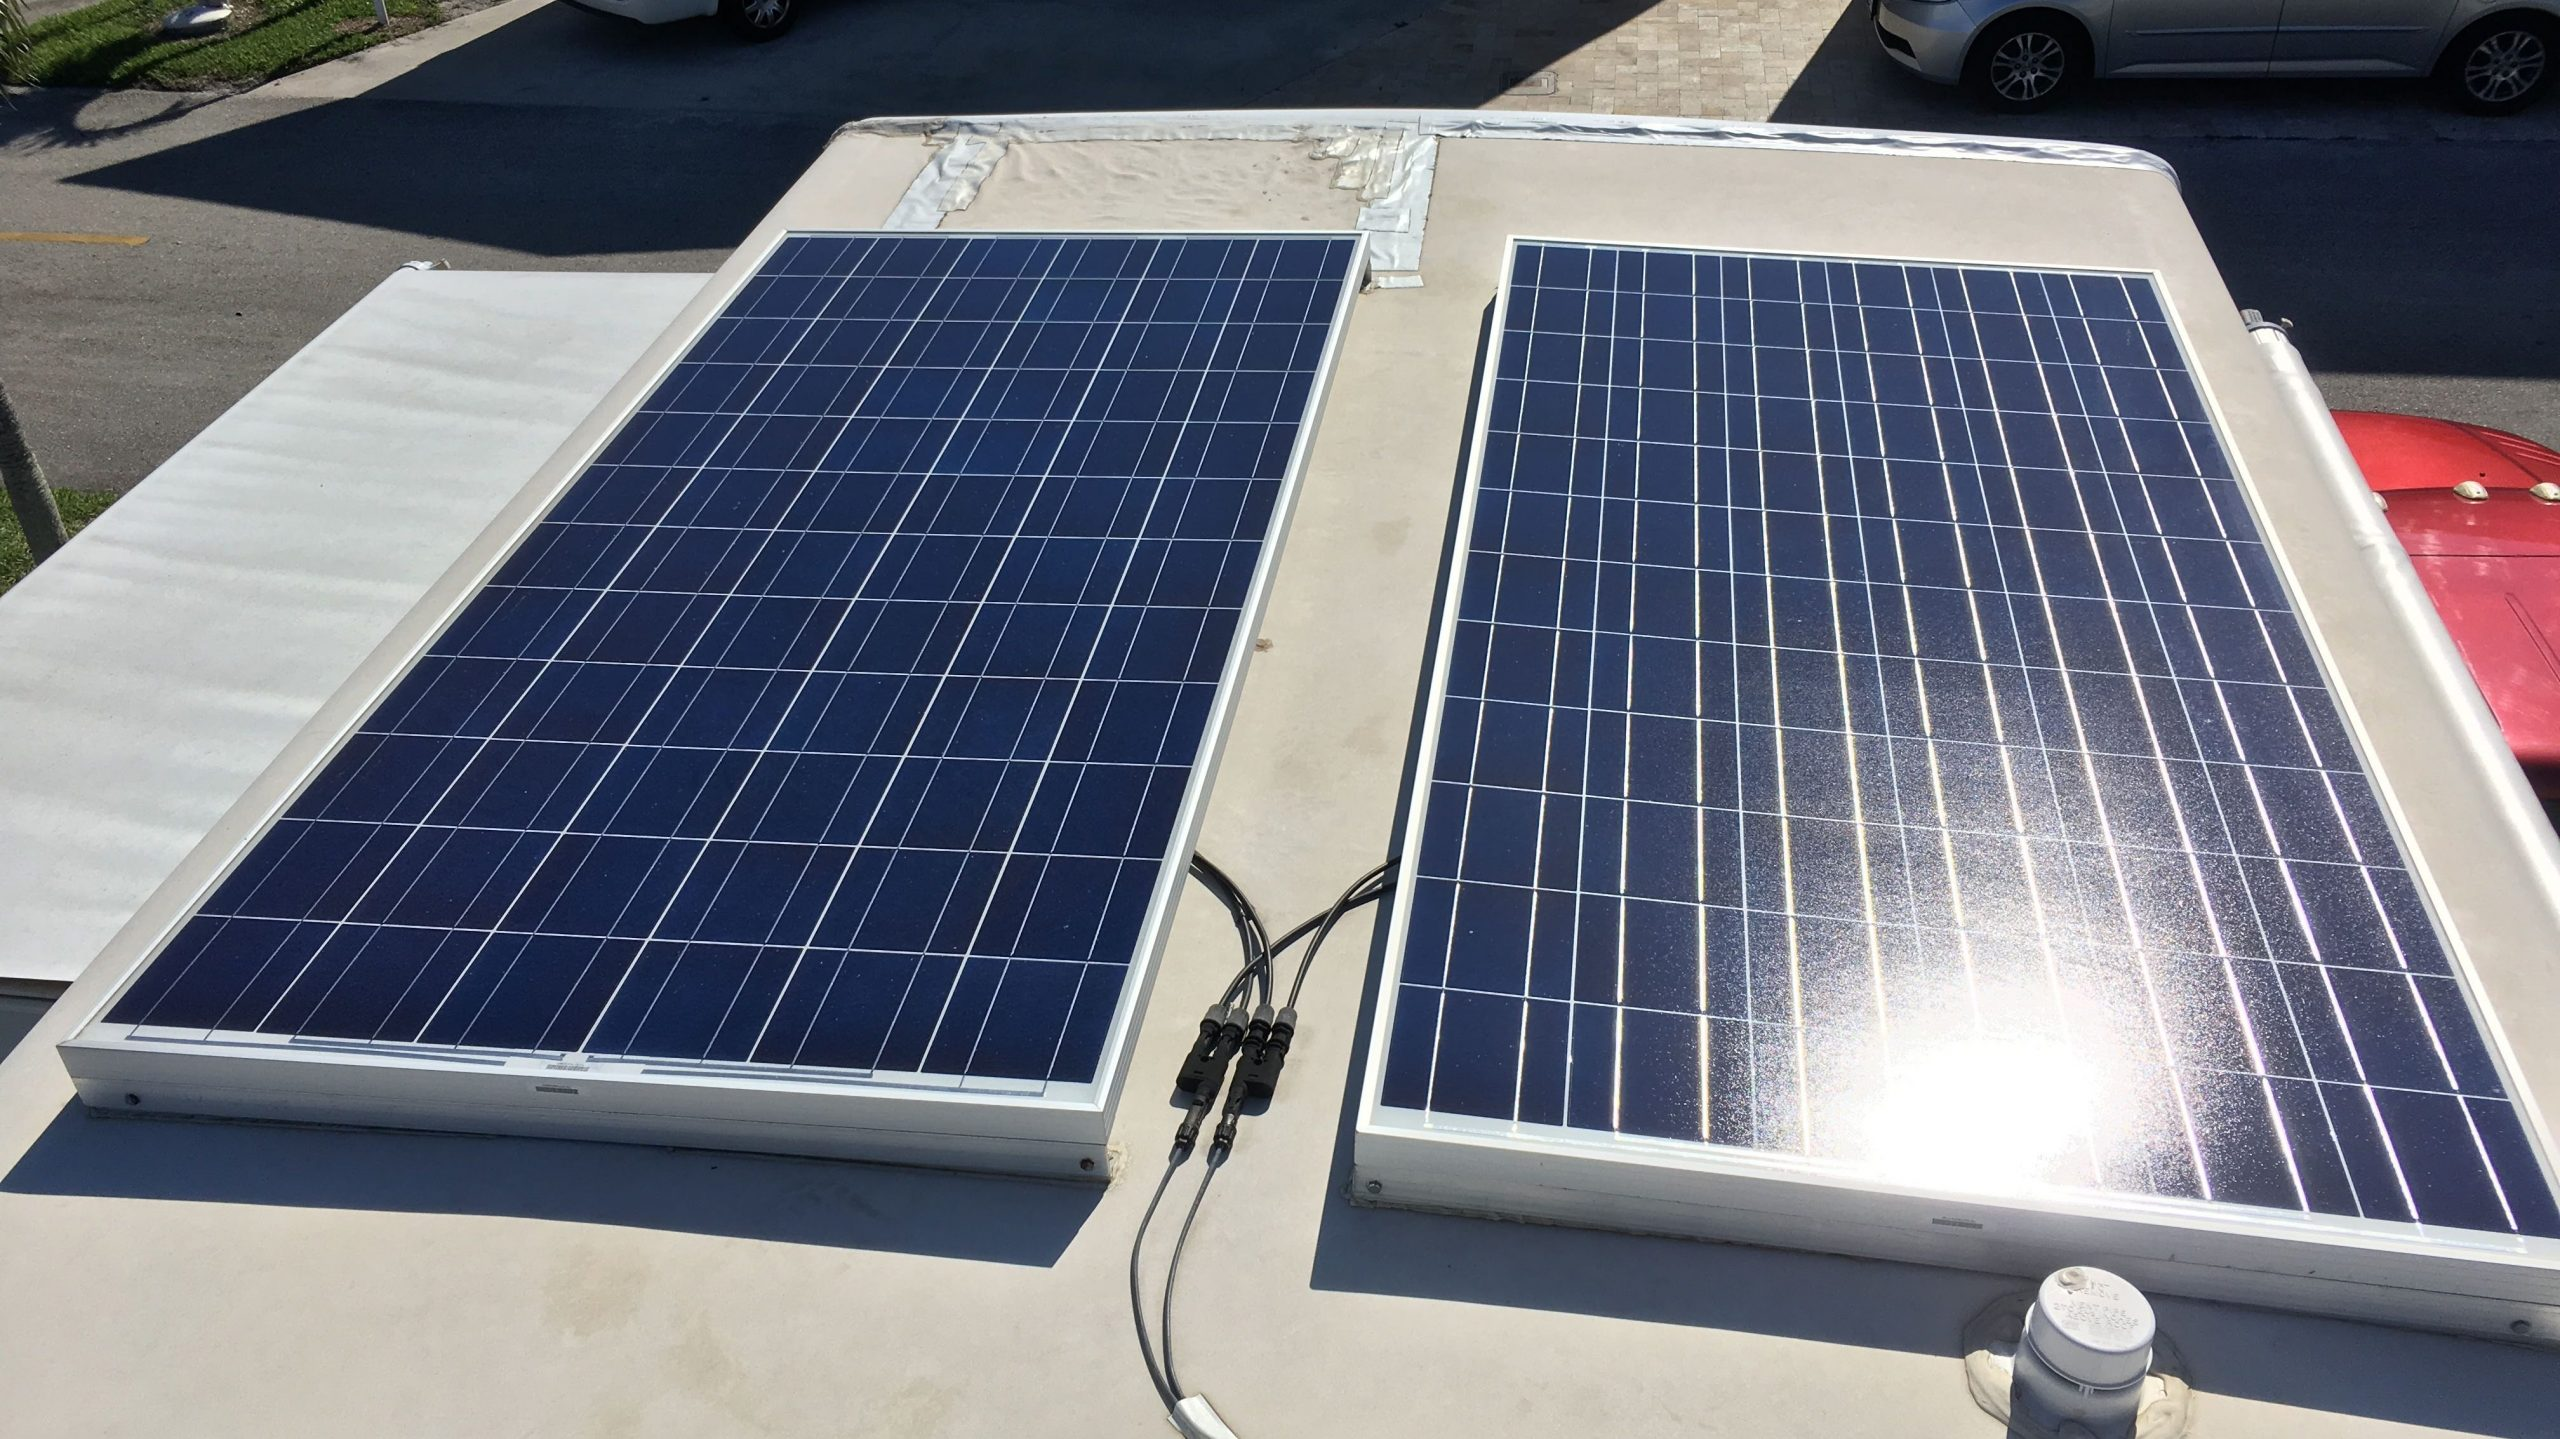 How much solar do you need for your RV roof